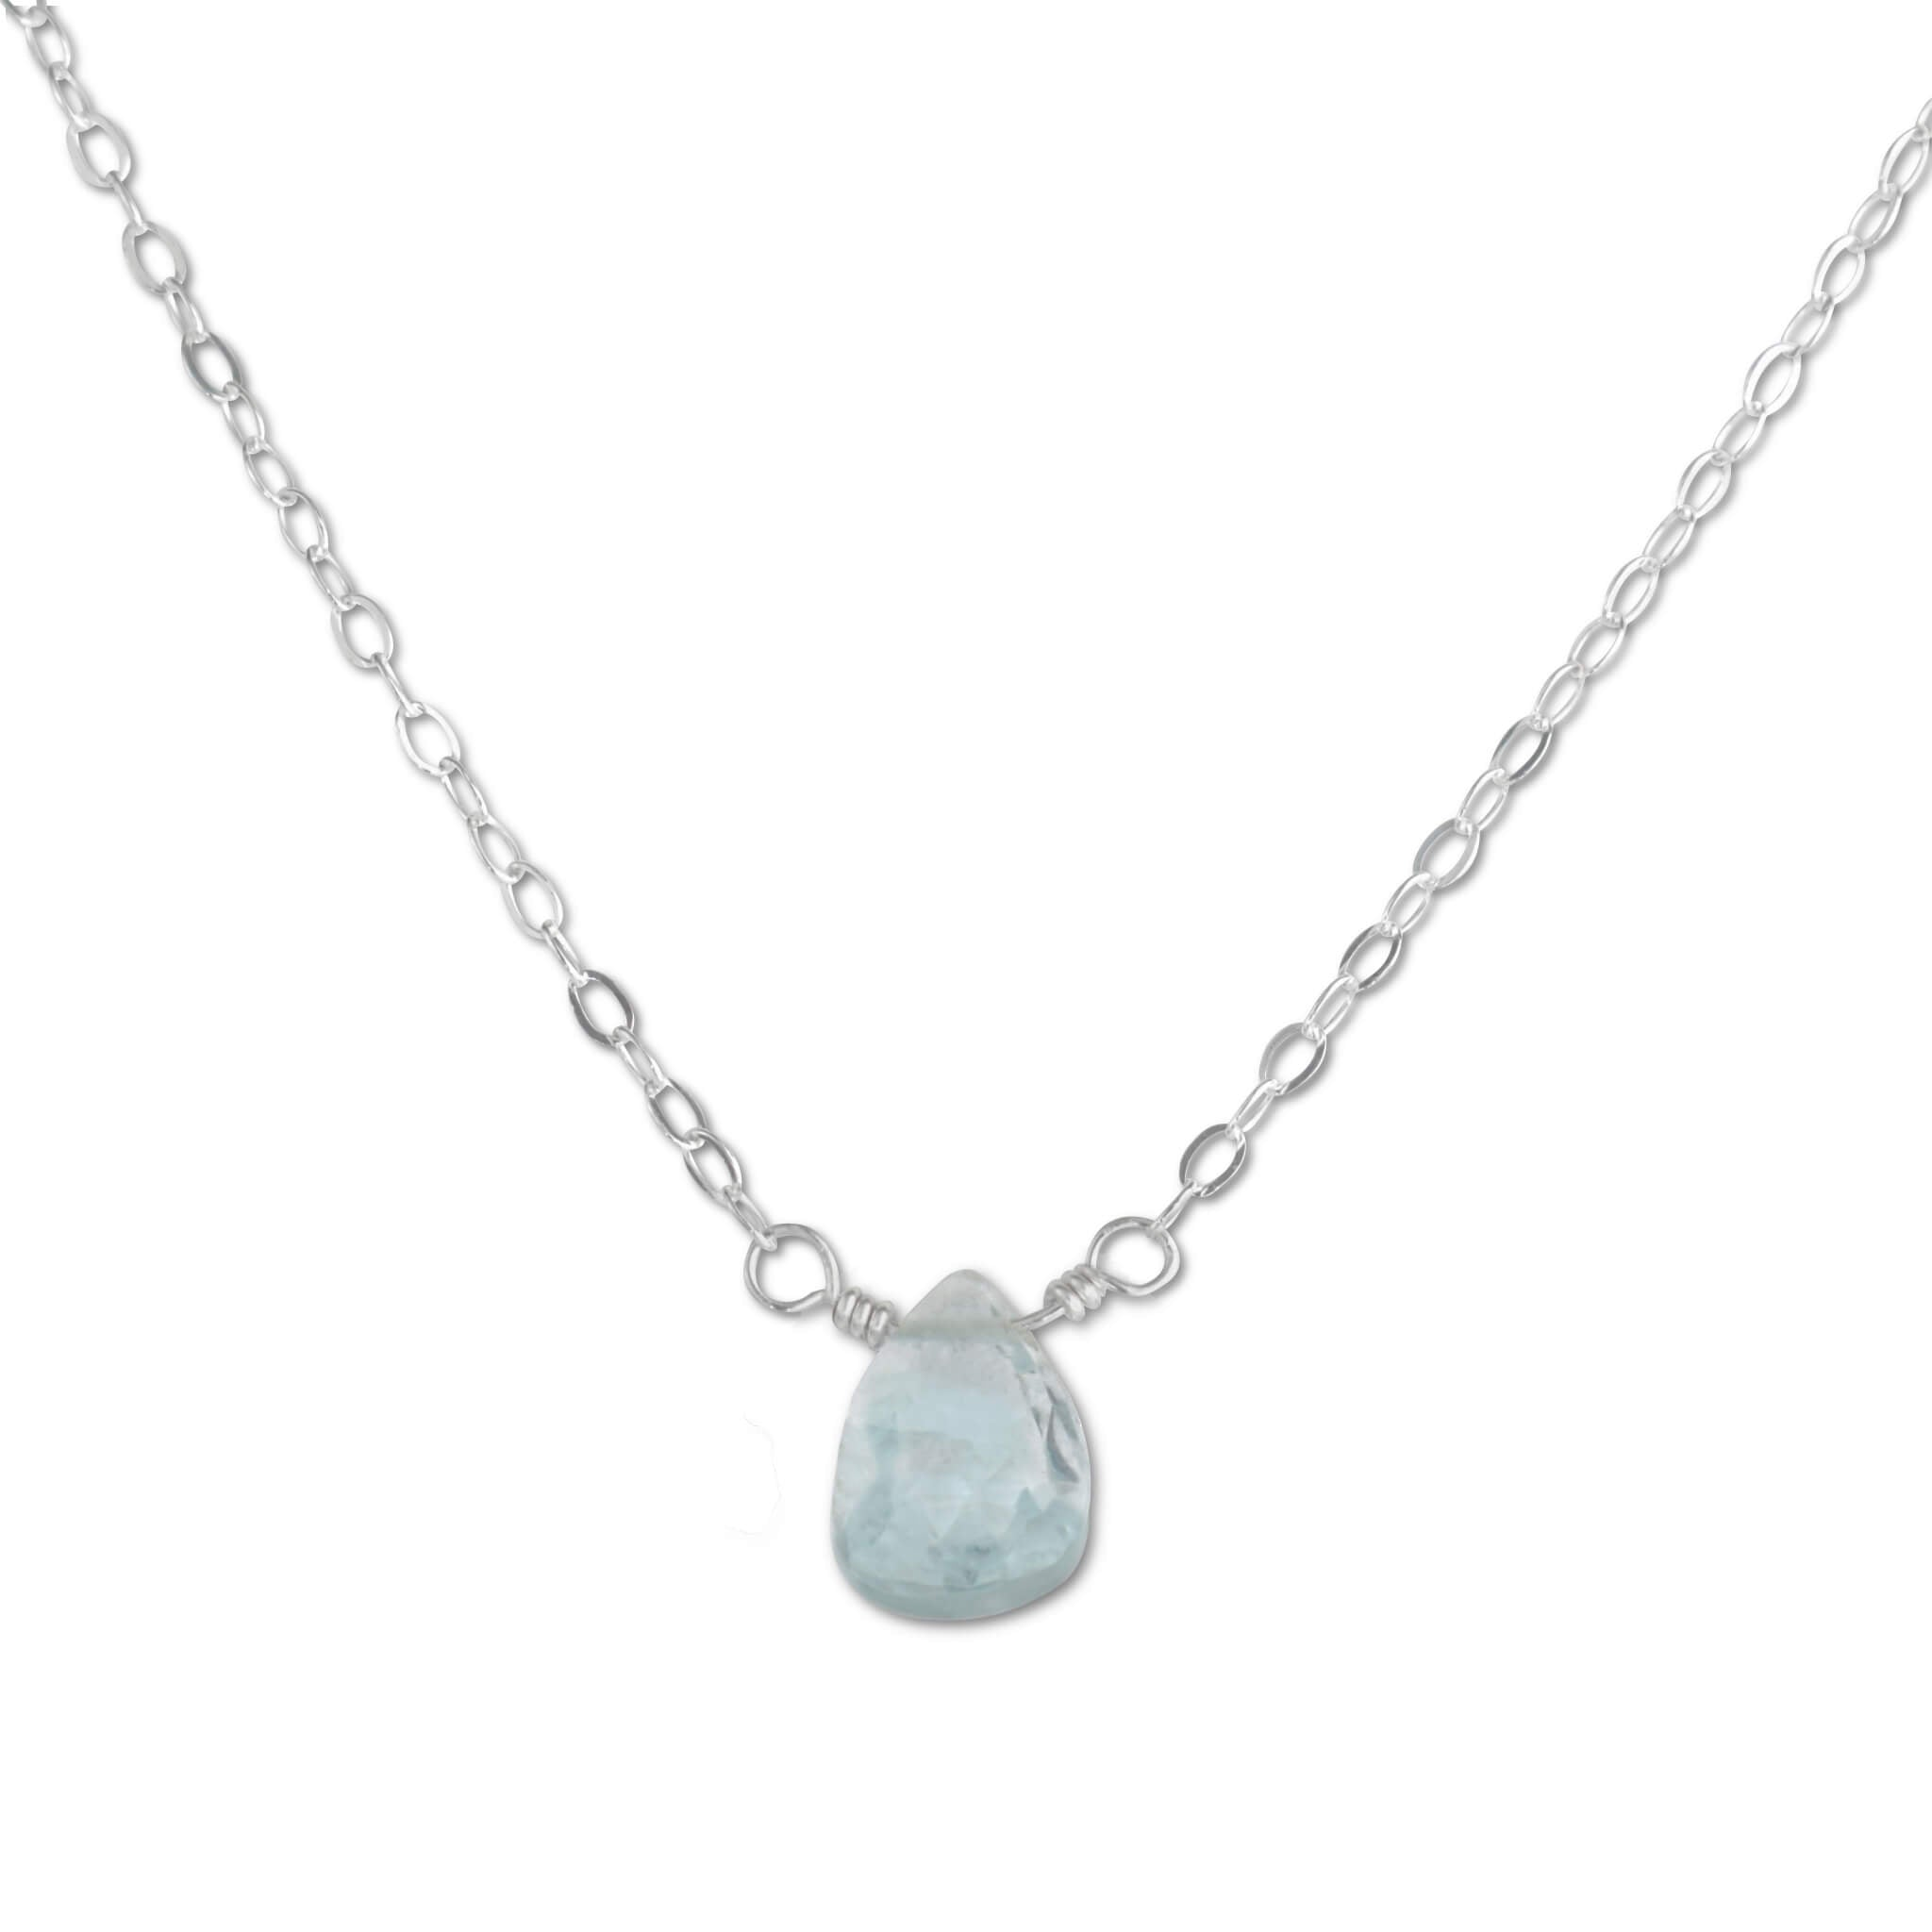 Aquamarine Briolette Necklace - aymcollections